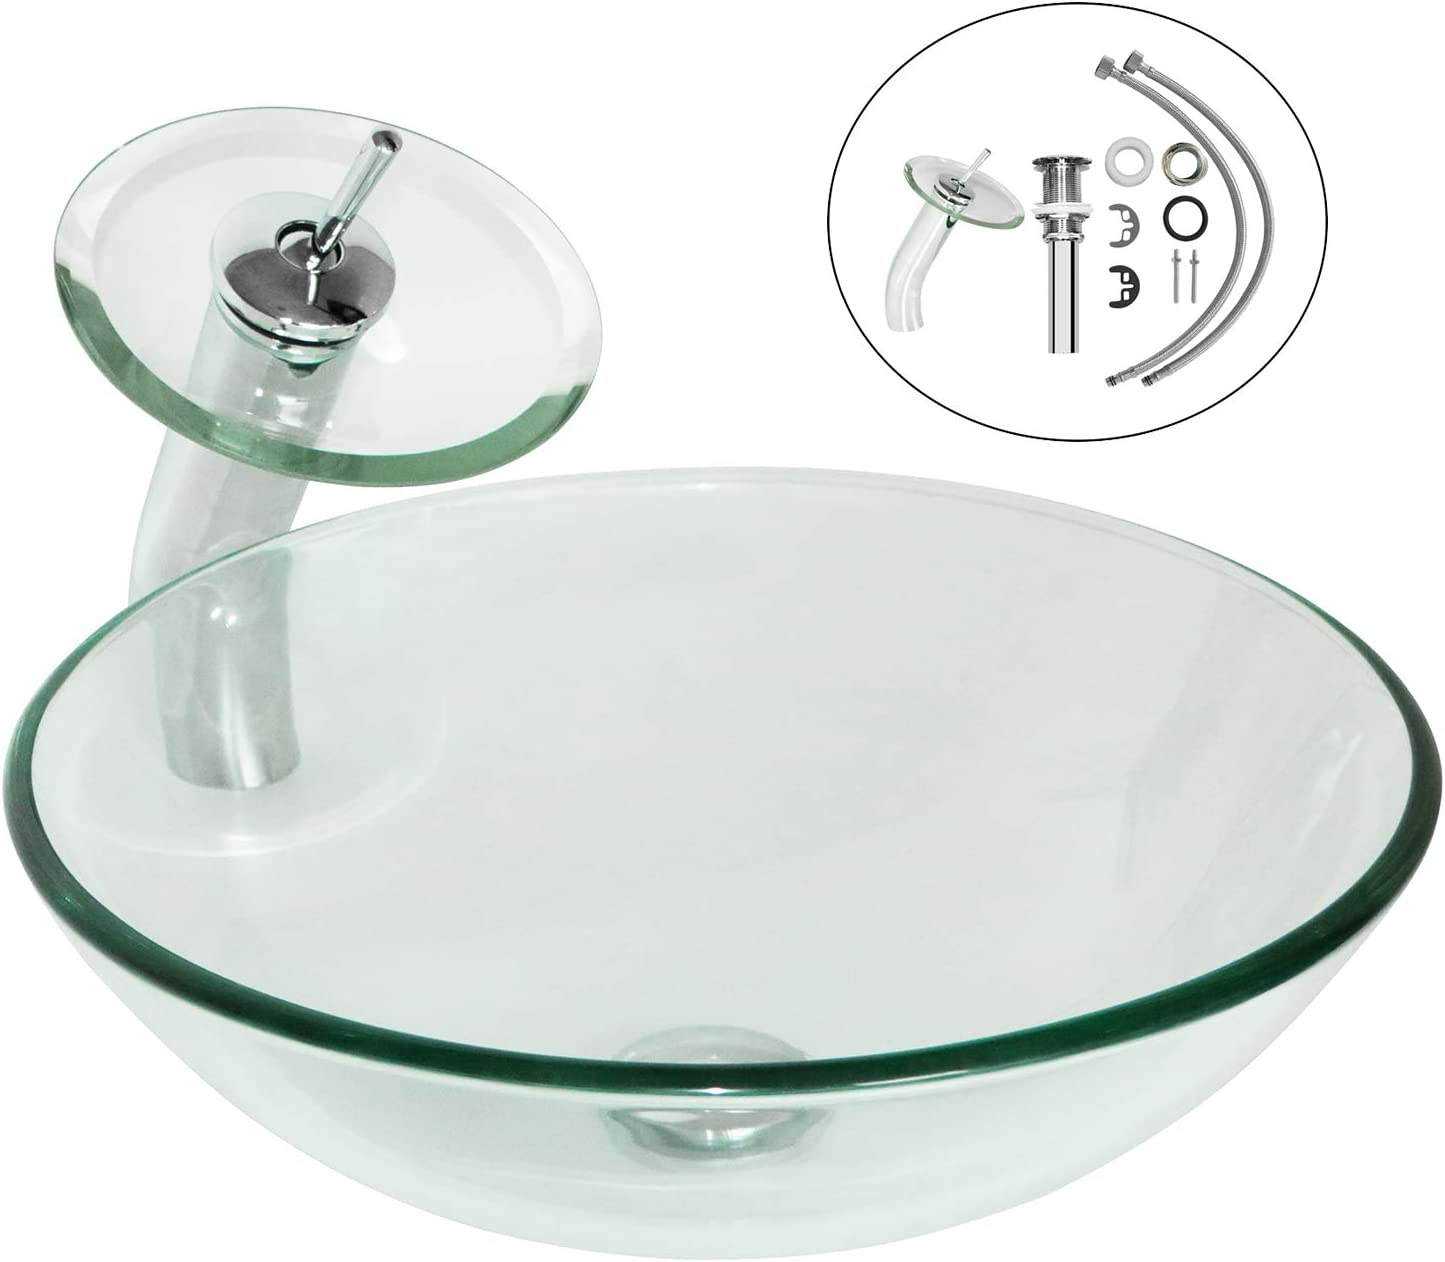 Frosted Color PULUOMIS Tempered Glass Vessel Bathroom Vanity Sink Round Bowl Chorme Faucet /& Pop-up Drain Combo